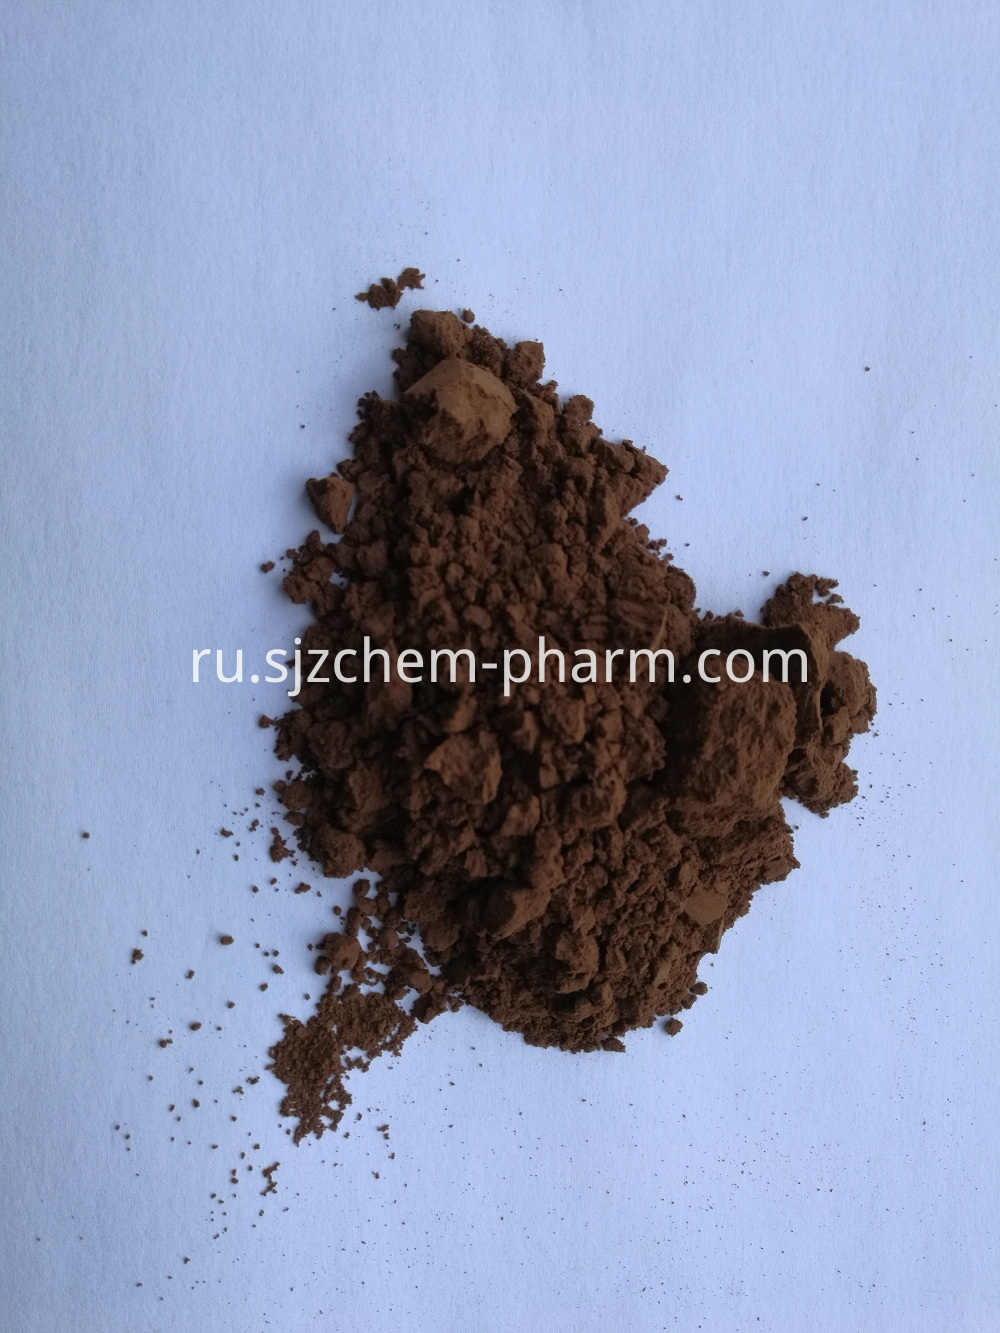 Dutch Processed Unsweetened Cocoa Powder